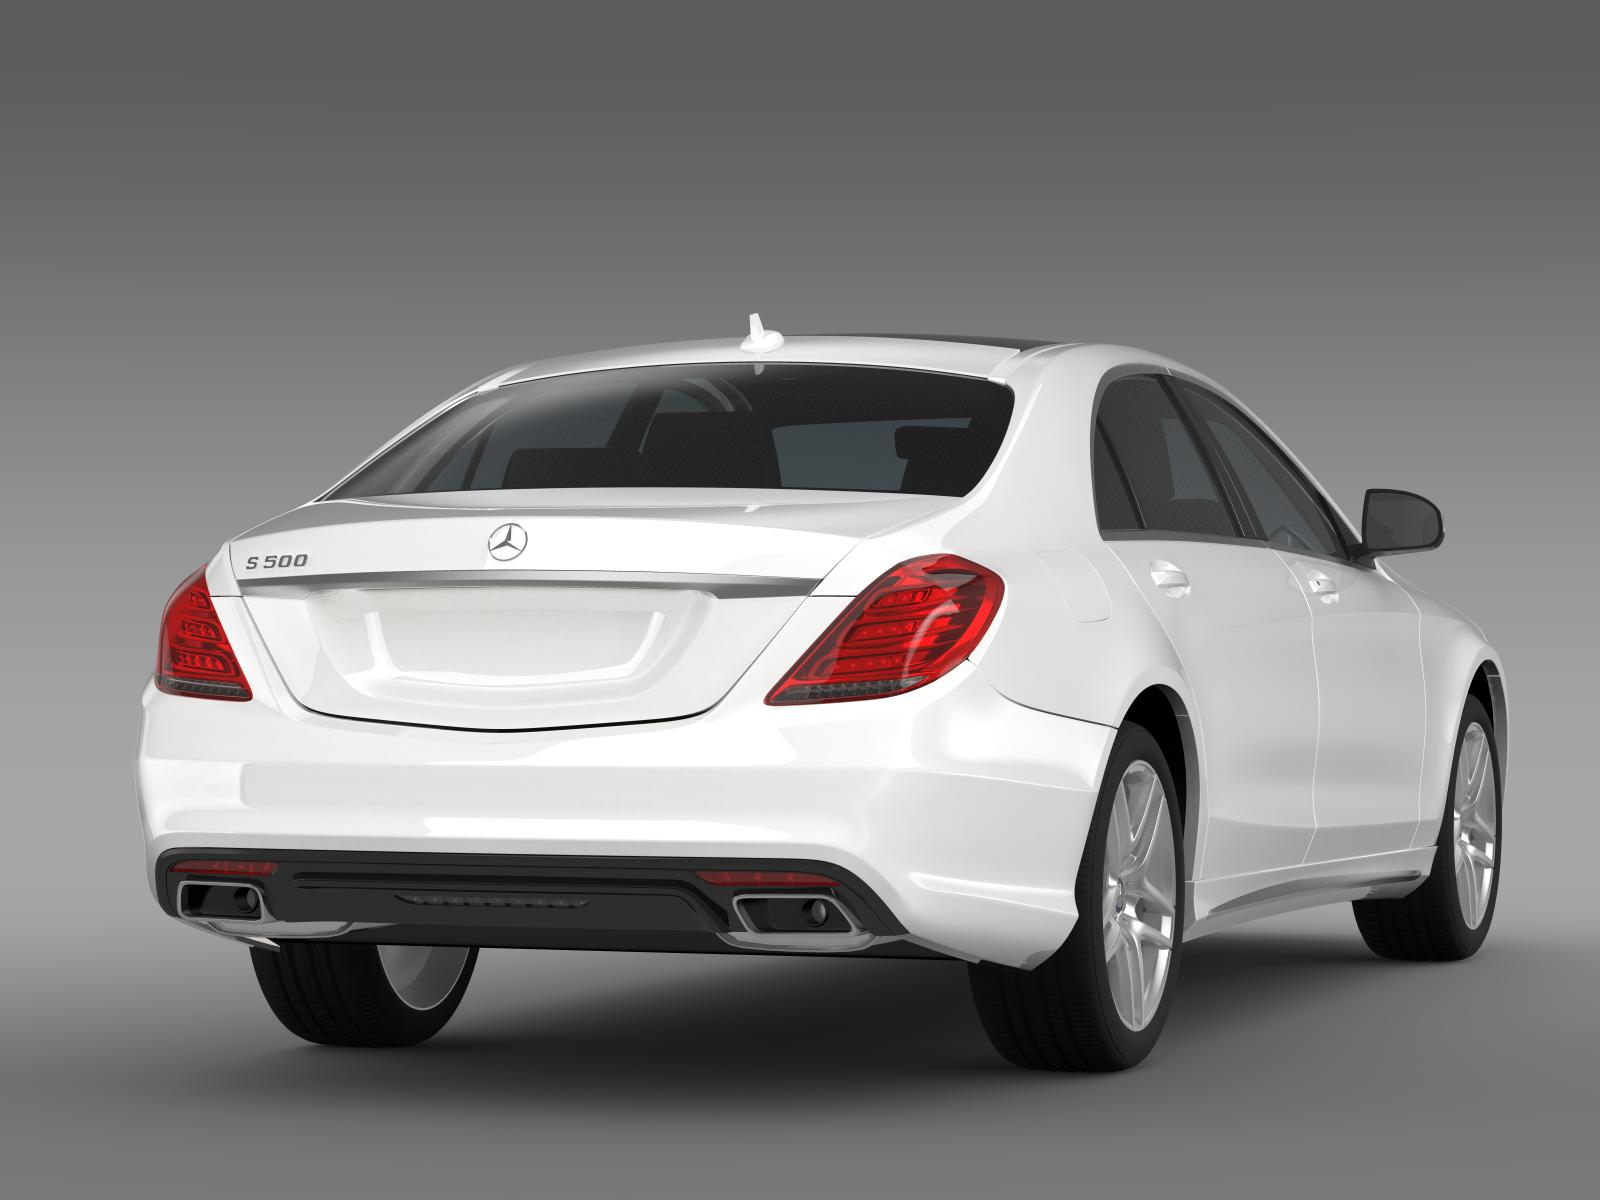 Amg mercedes benz s 500 w222 2013 3d model buy amg for Models of mercedes benz